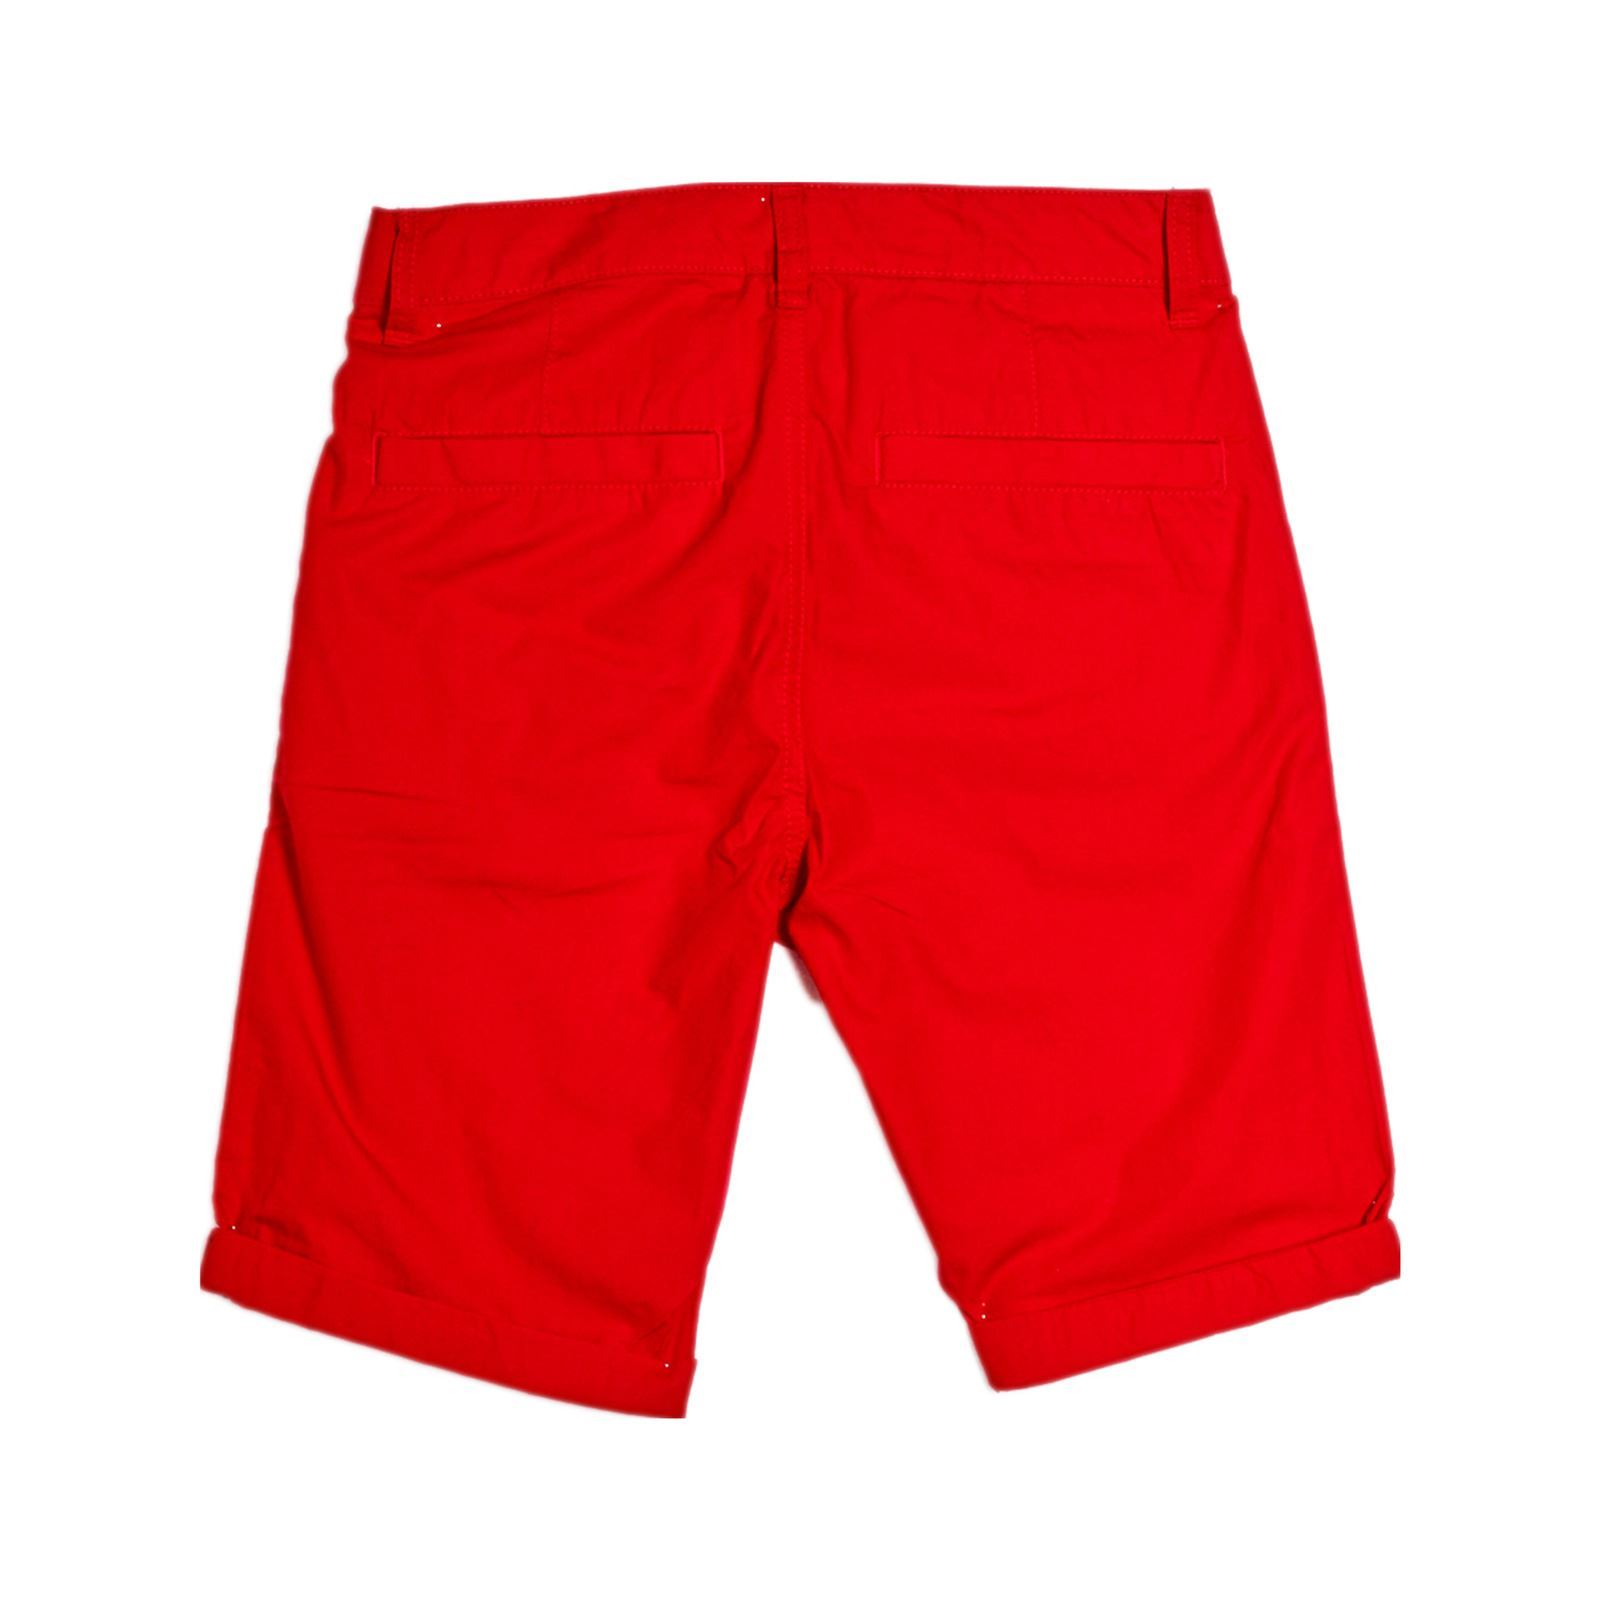 shortRot Bermuda shortRot GrößeStandardgröße Benetton Benetton Bermuda GrößeStandardgröße WH2IeD9YbE